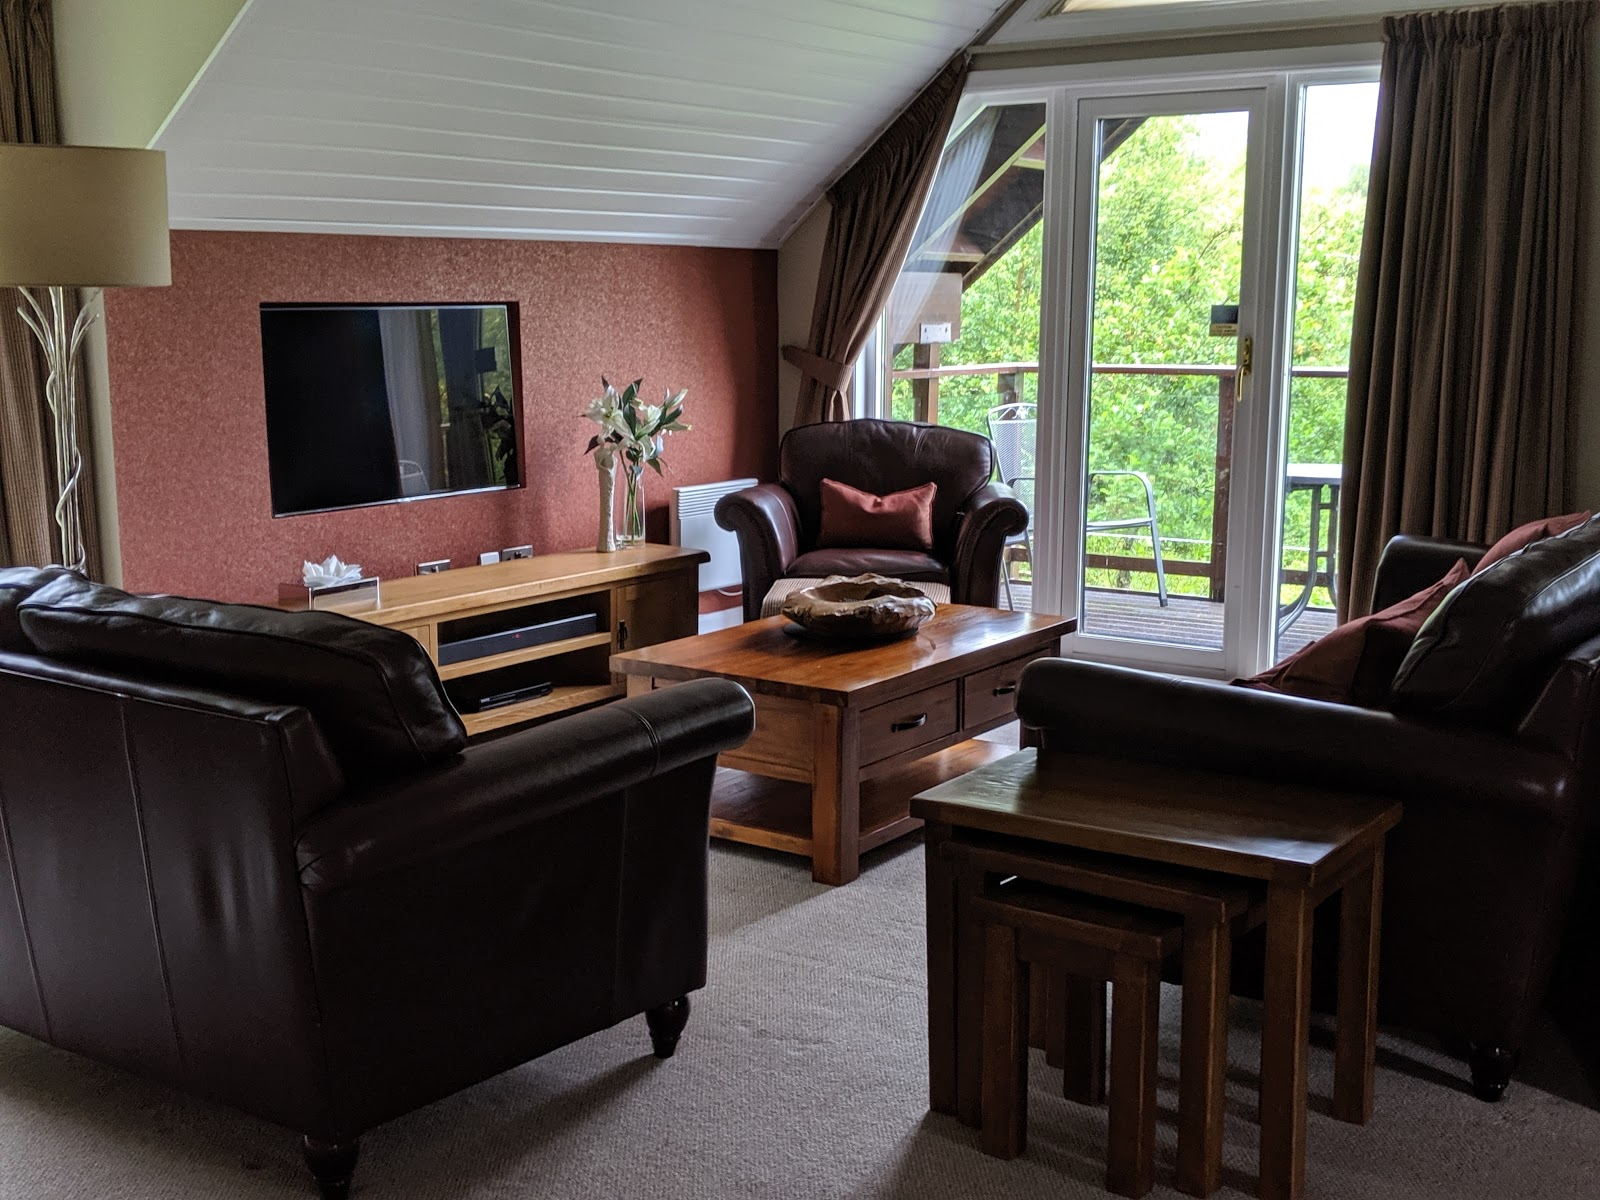 A Short Break at Cameron Lodges, Loch Lomond - lodge 116 living area